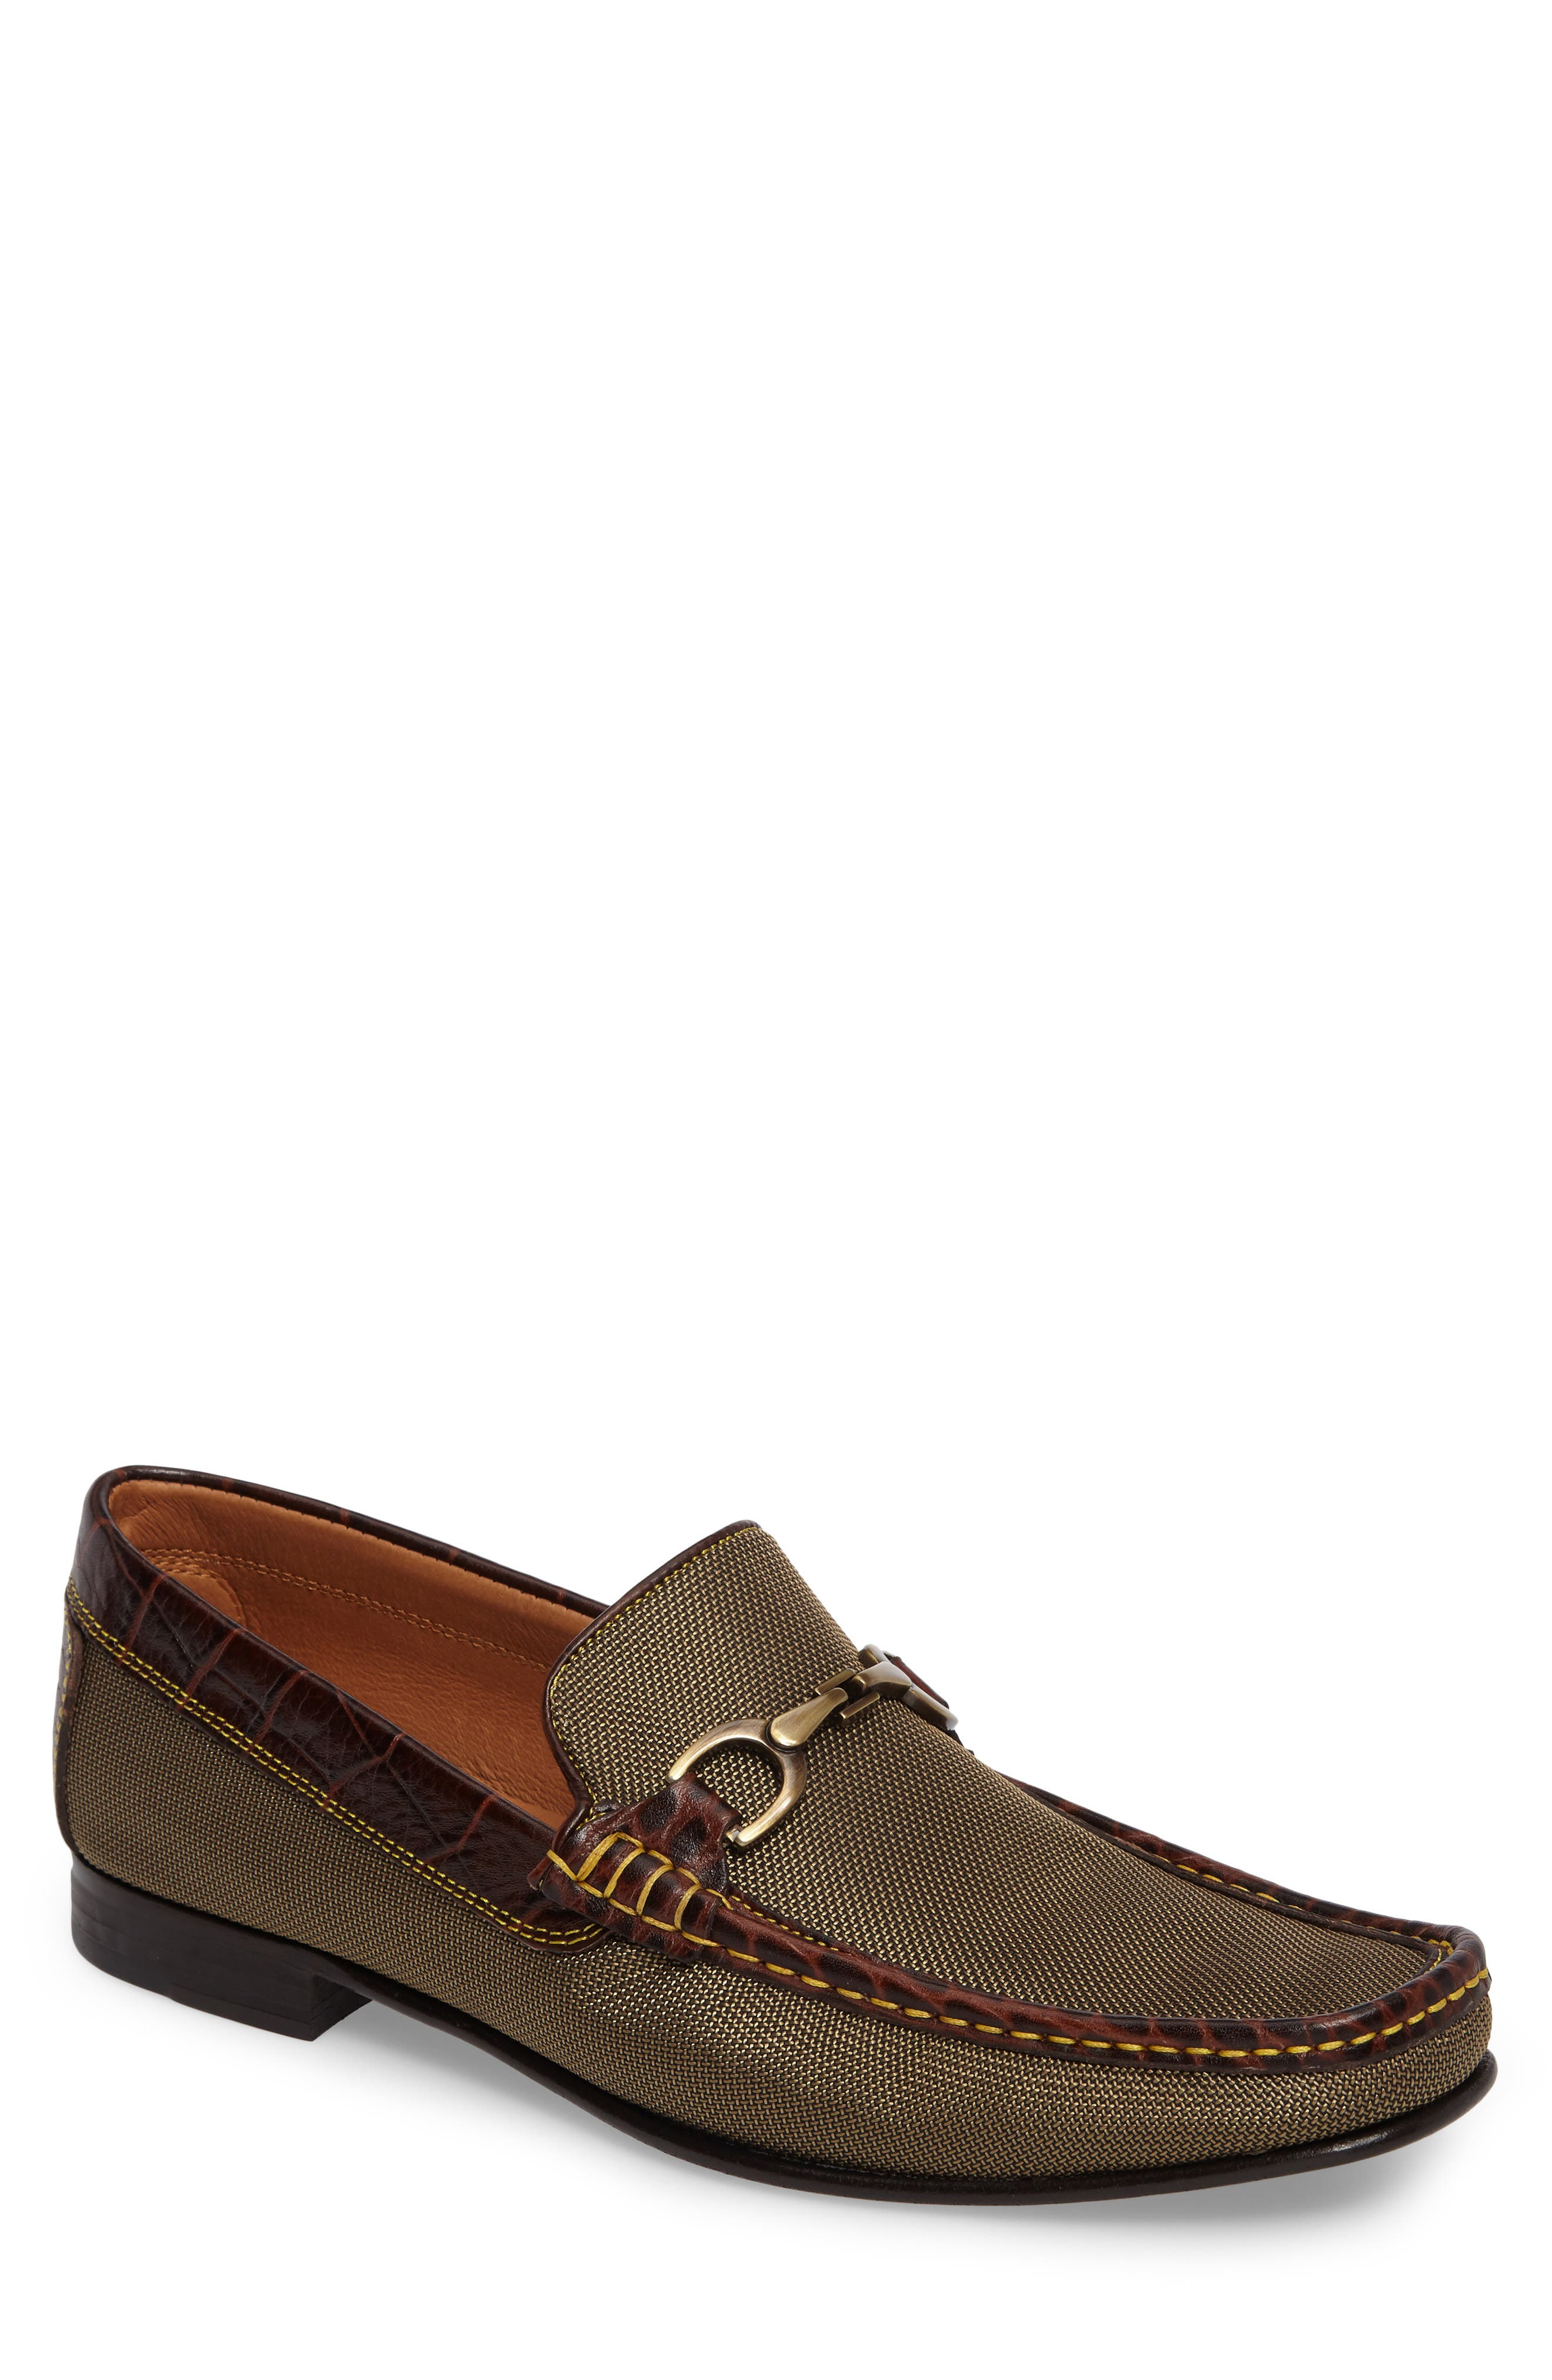 Darrin Embossed Loafer,                         Main,                         color, Bronze